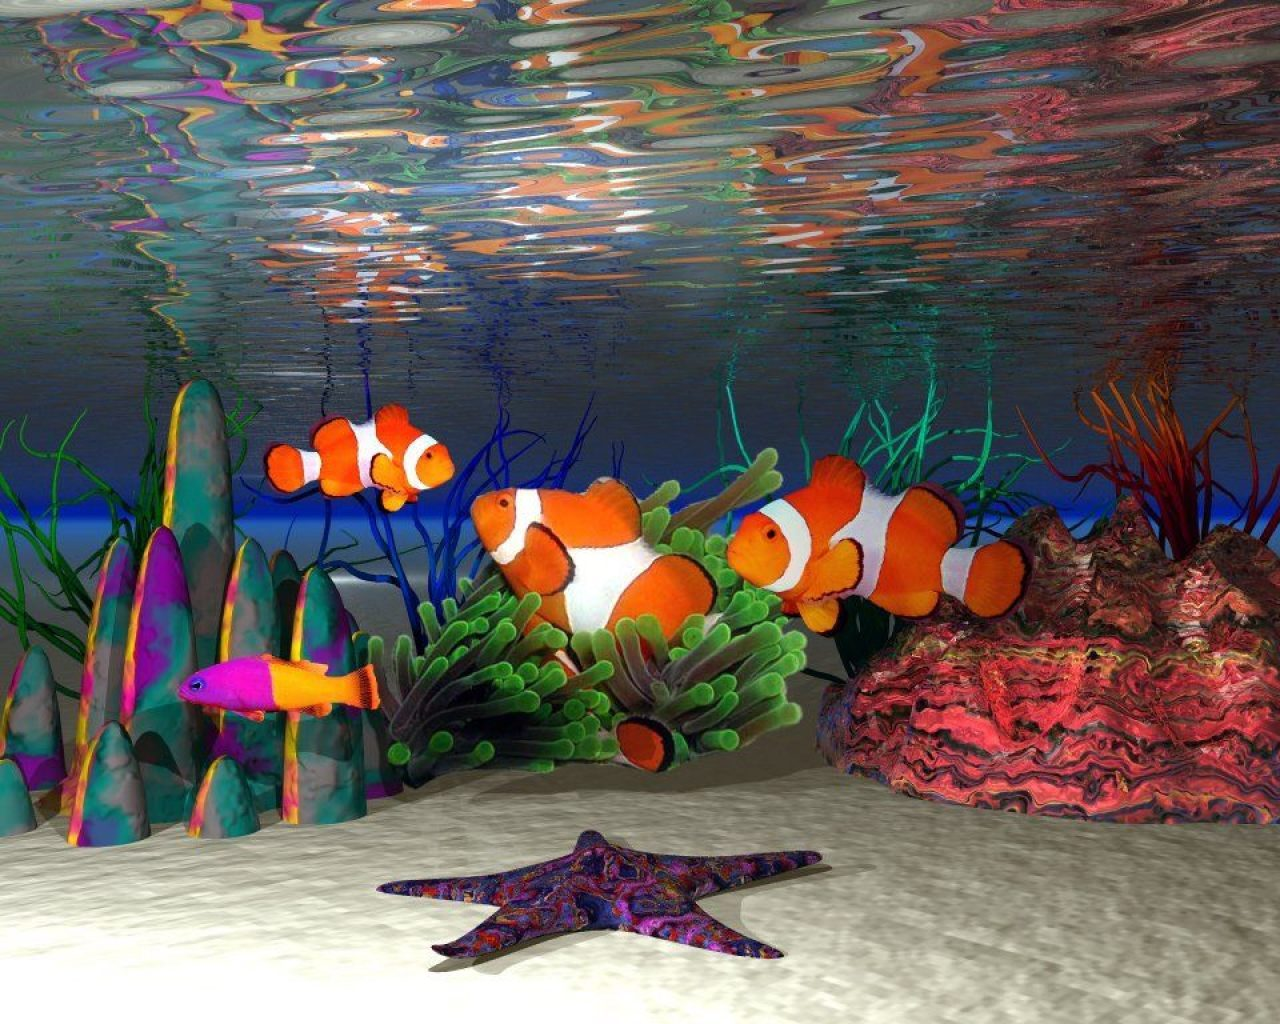 3d Fish Wallpapers For Desktop Peces Payaso 1280x1024 Fondos De Pantalla Y Wallpapers